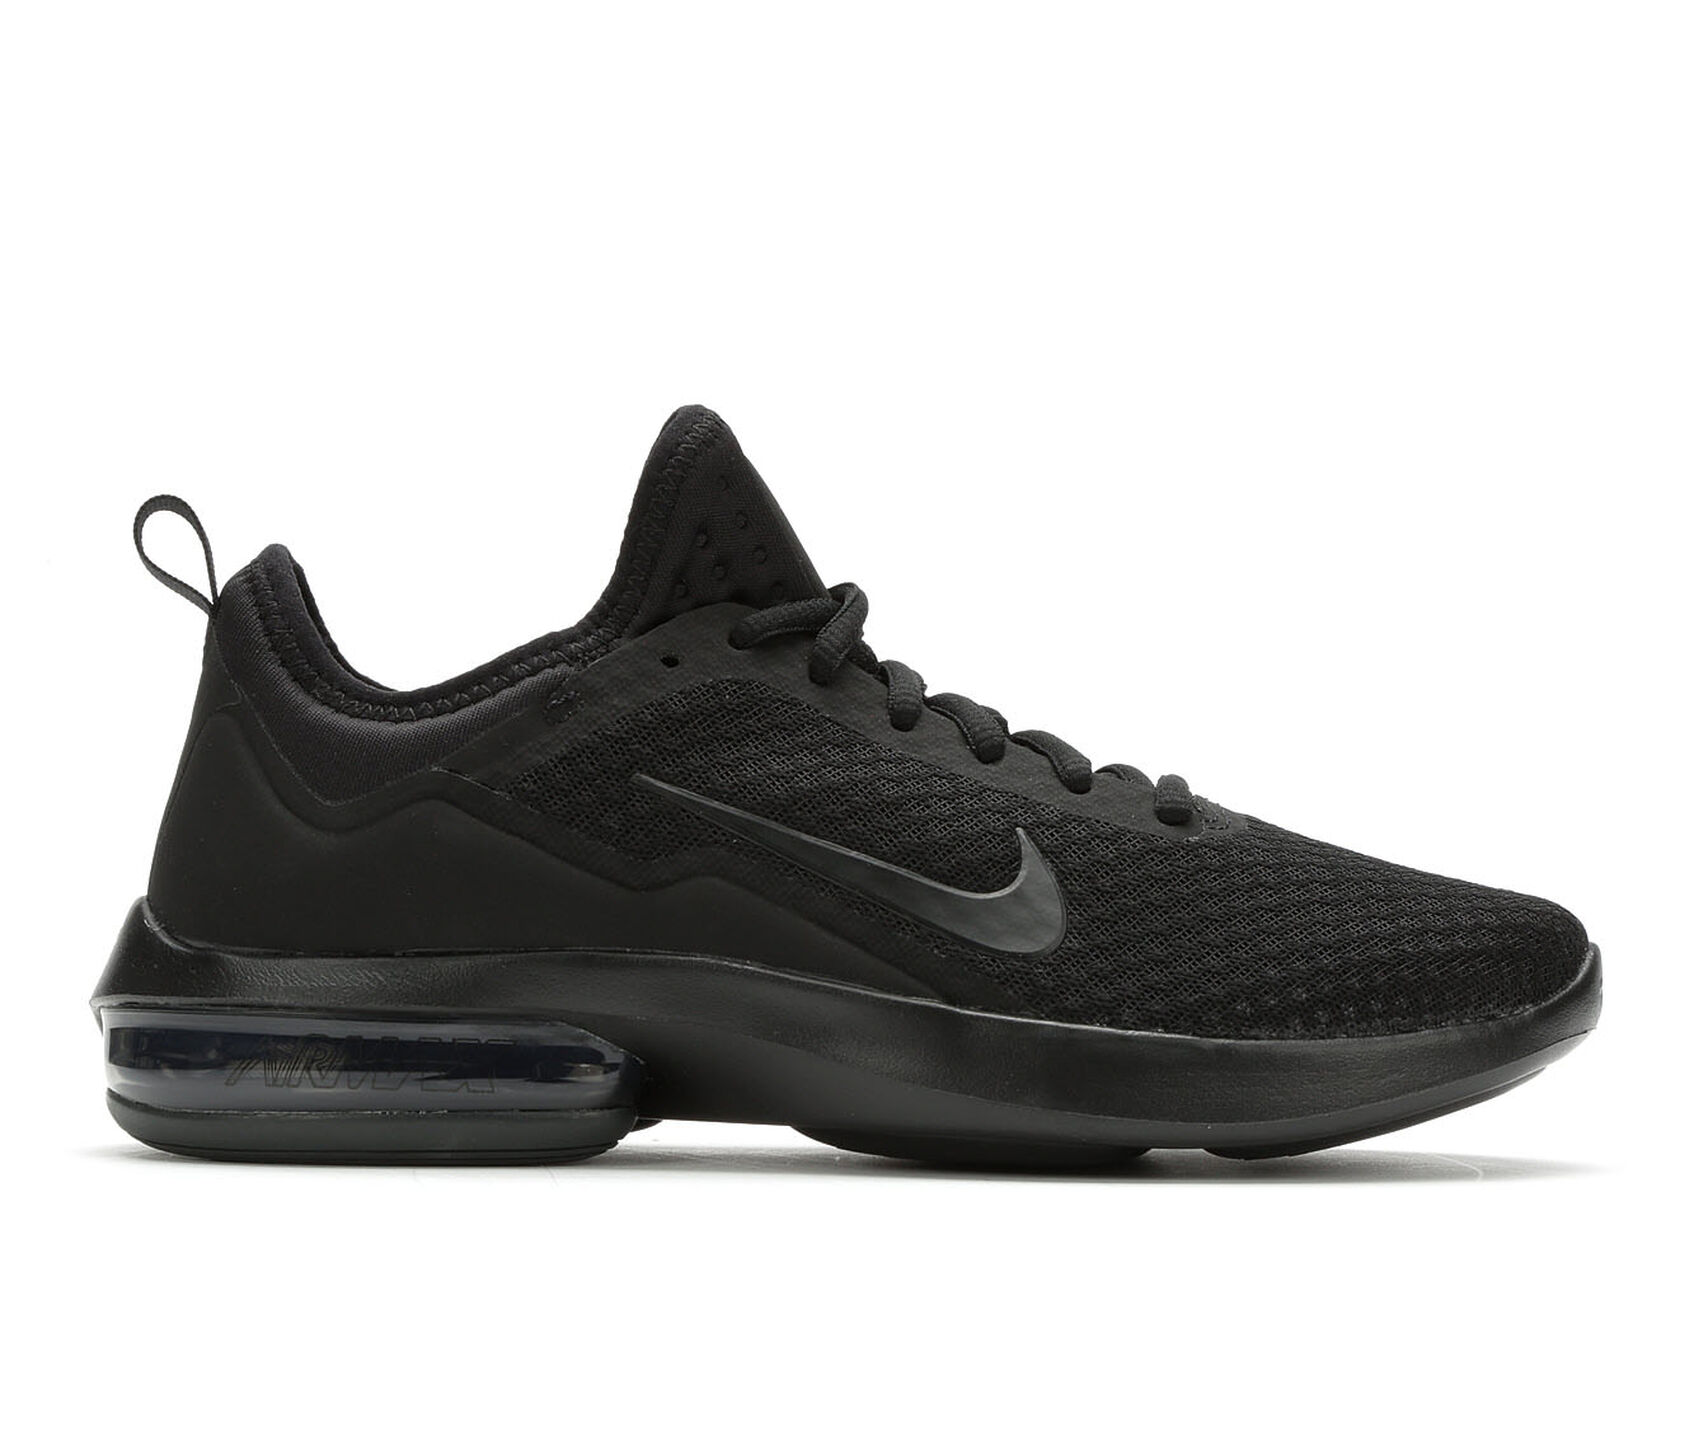 cheaper ae792 60a3a ... Nike Air Max Kantara Running Shoes. Previous